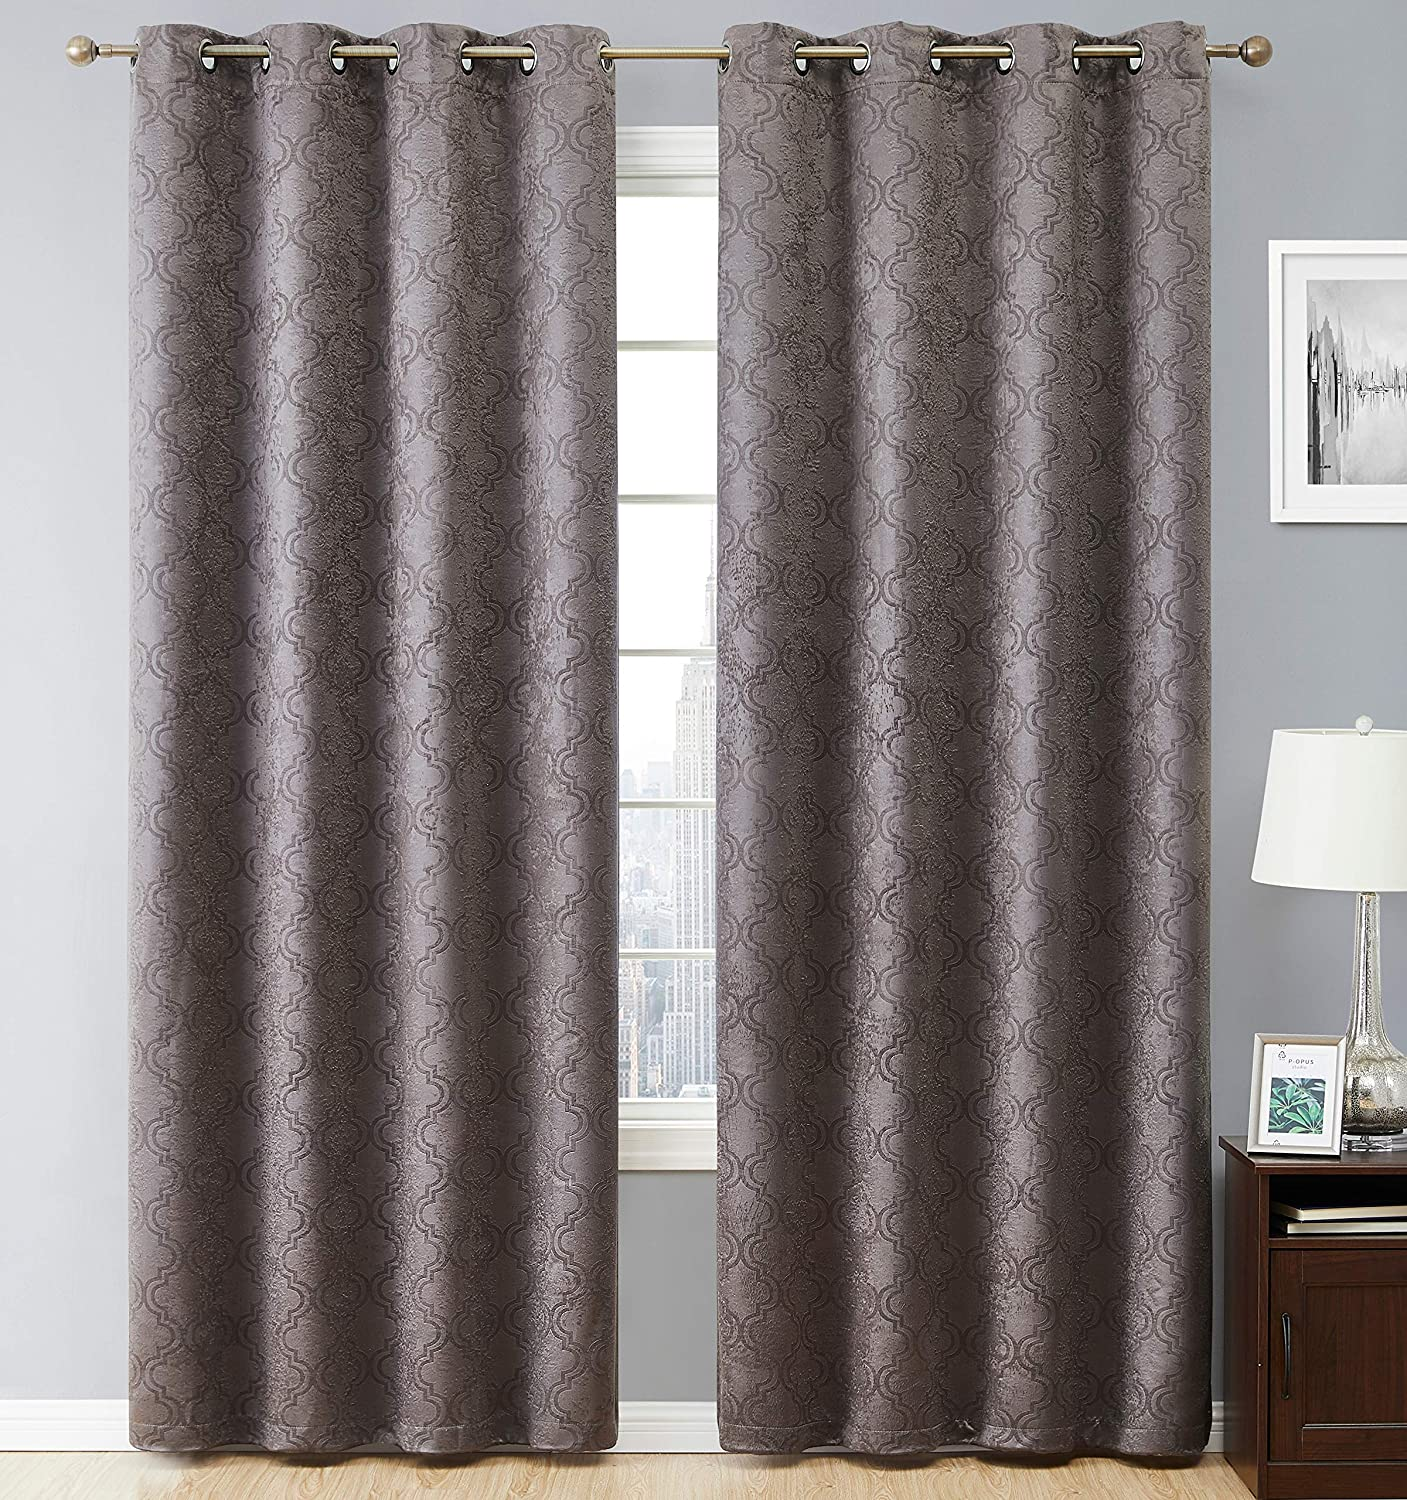 Amazon Com Hlc Me Redmont Lattice Geometric Thermal Insulated Energy Efficient Room Darkening Privacy Blackout Grommet Long Curtain Panels For Bedroom Set Of 2 Panels 52 X 96 Inches Length Dark Grey Home